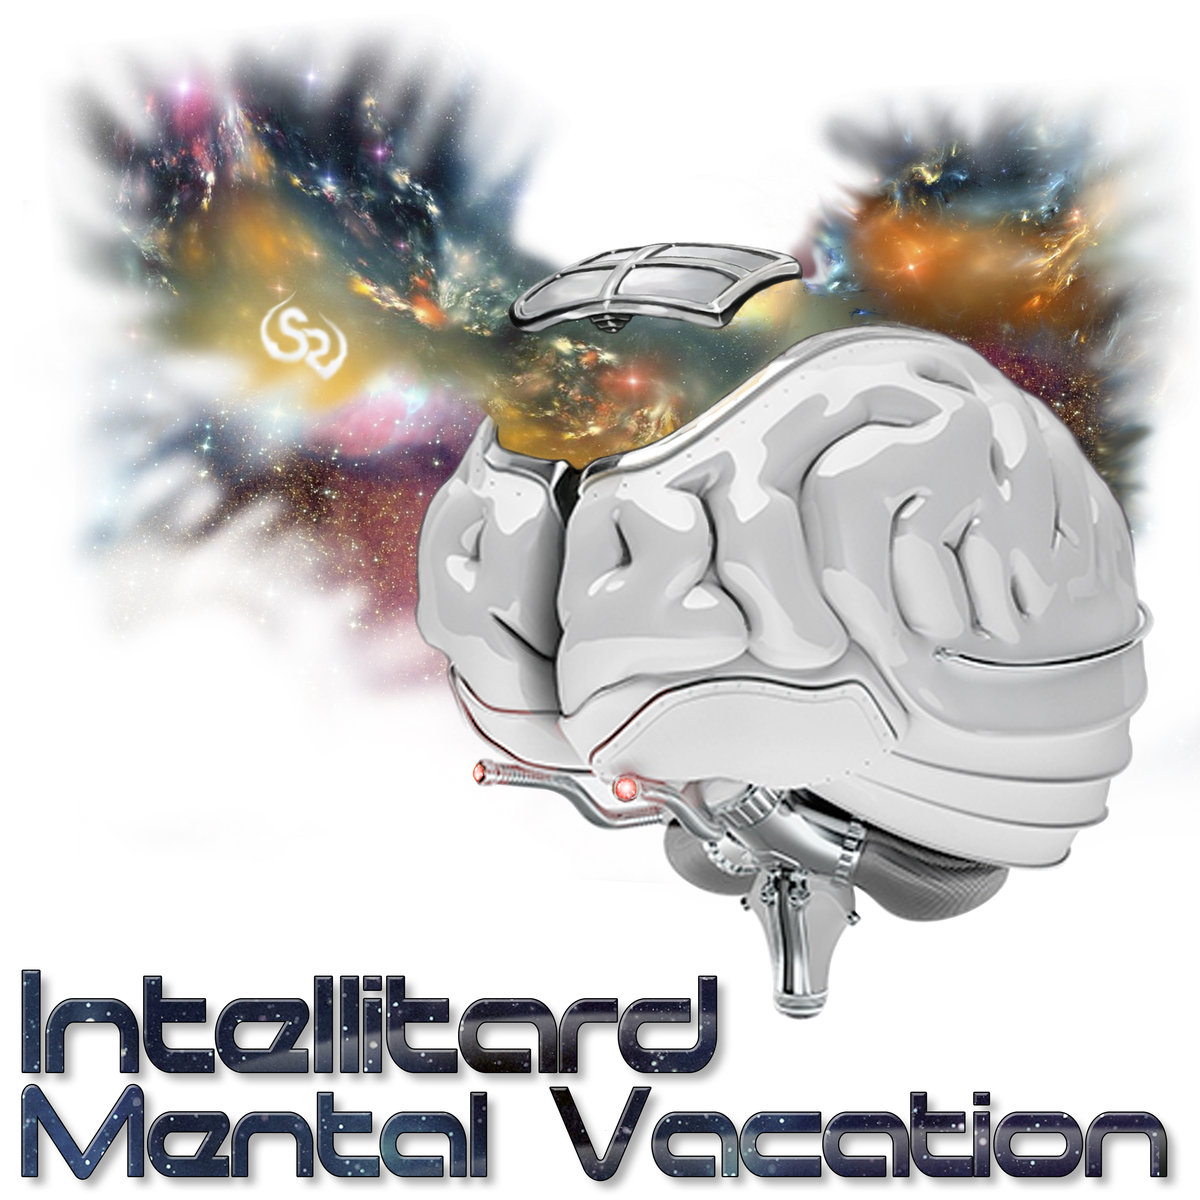 Intellitard - Socktopus @ 'Mental Vacation' album (808, bass)